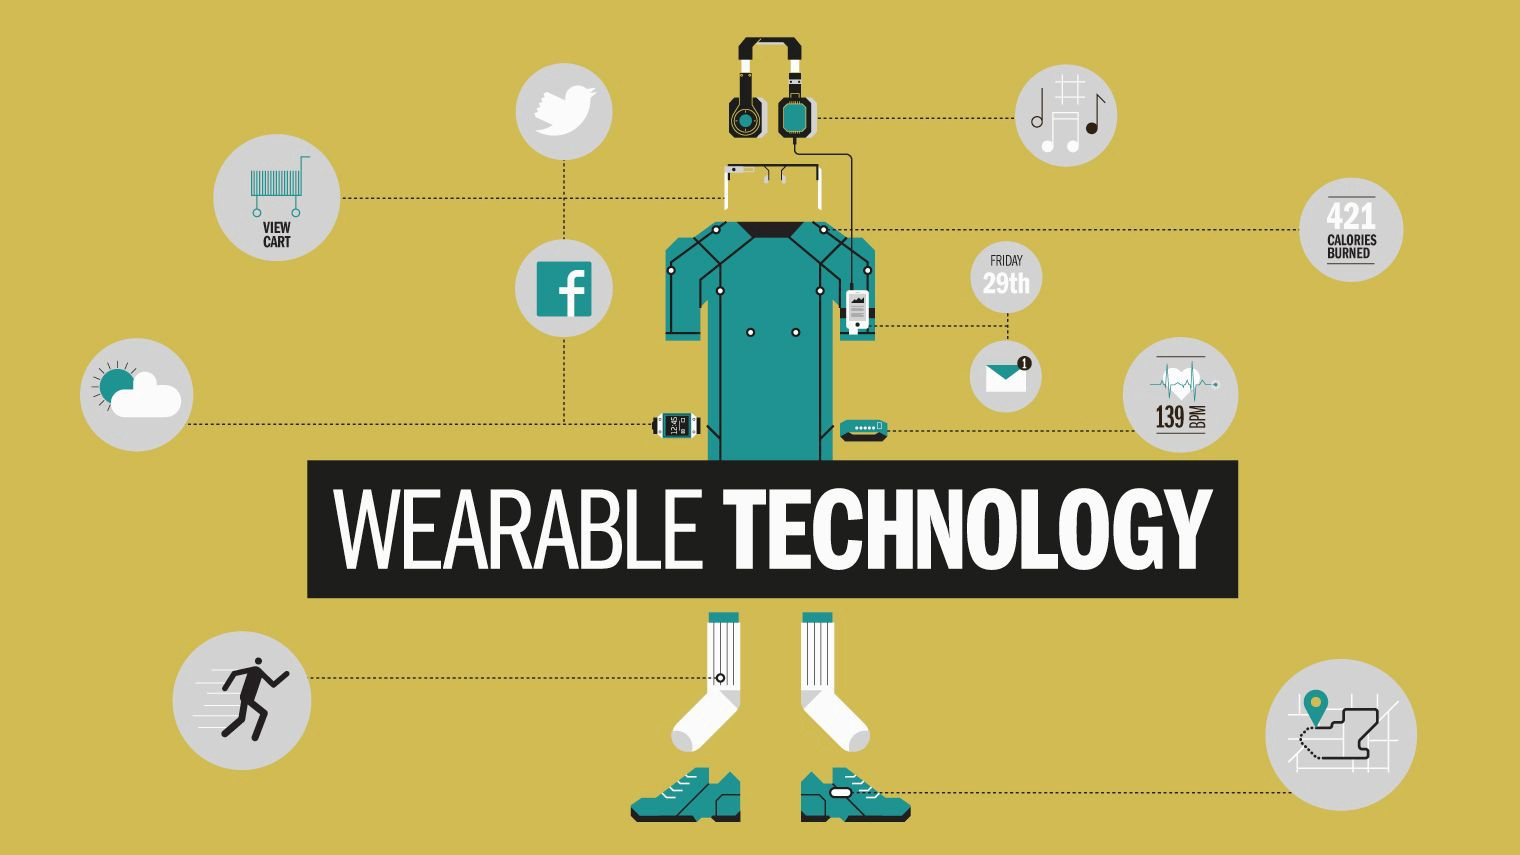 Use Technology to Improve Your Life & Wellbeing